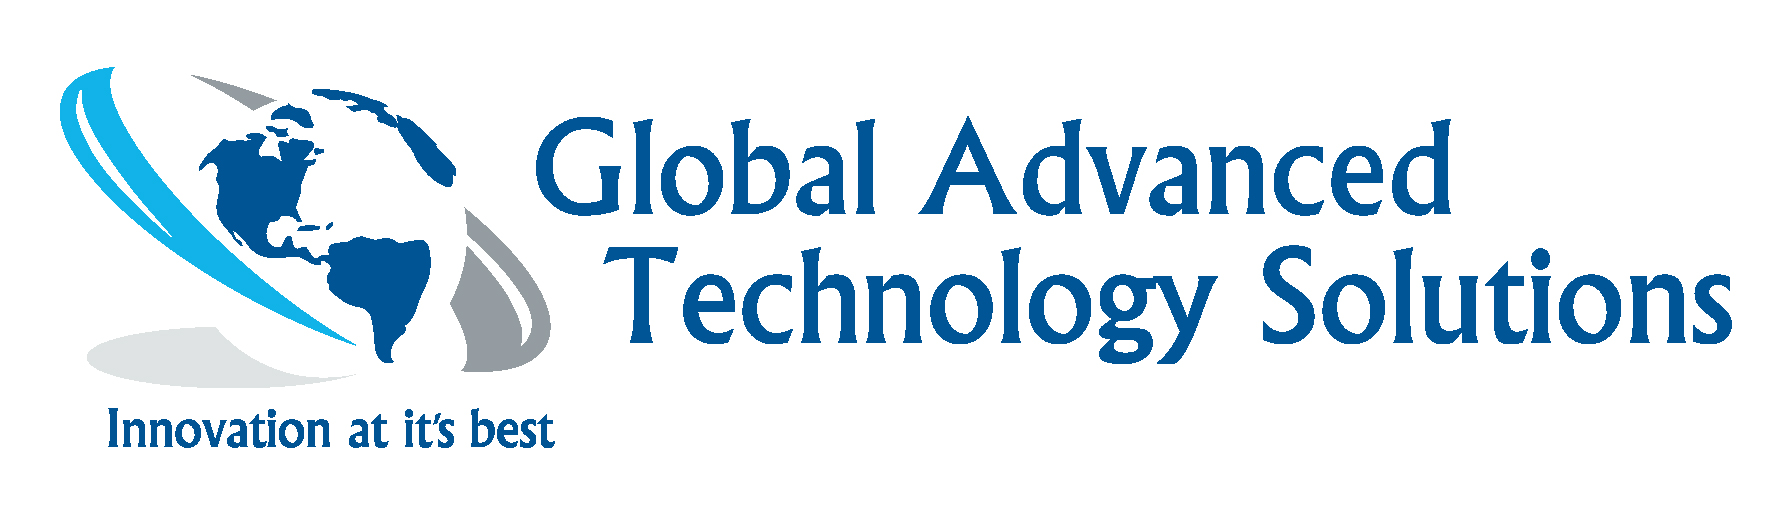 Global Advanced Technology Solutions